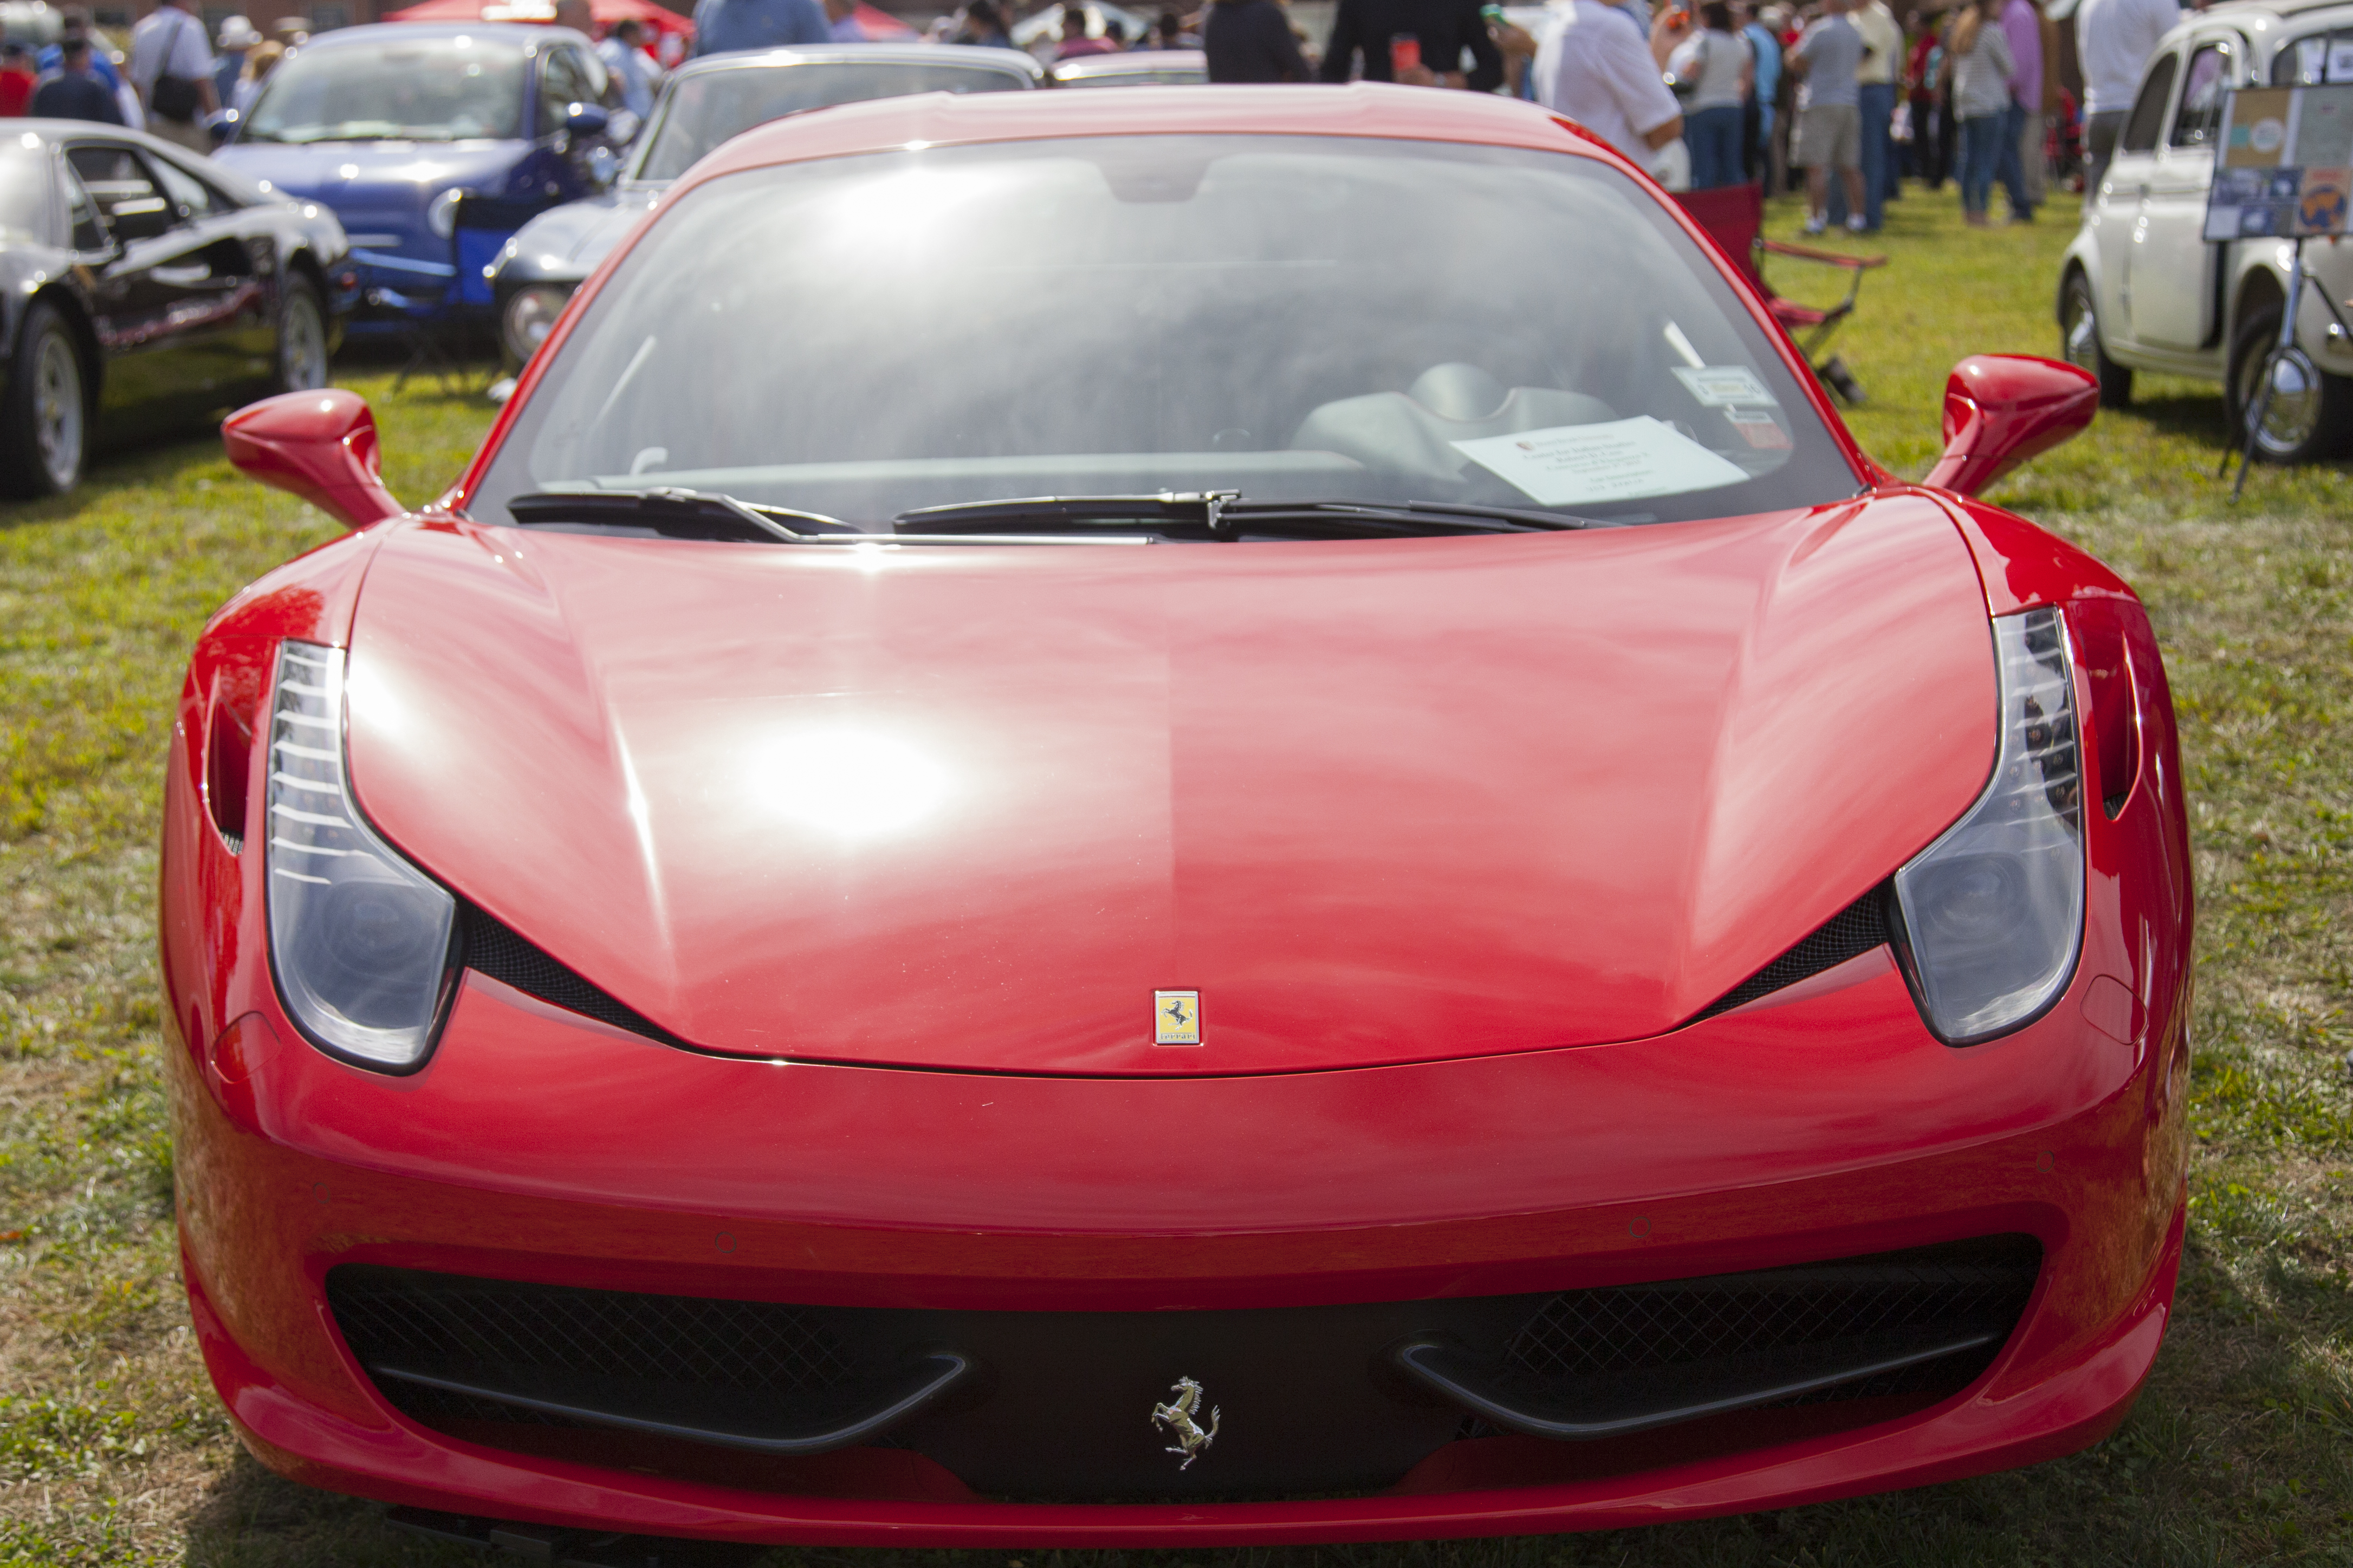 A Ferrari 458 Italia at the Concorso d'Eleganza X. GISELLE MIRANDA/THE STATESMAN